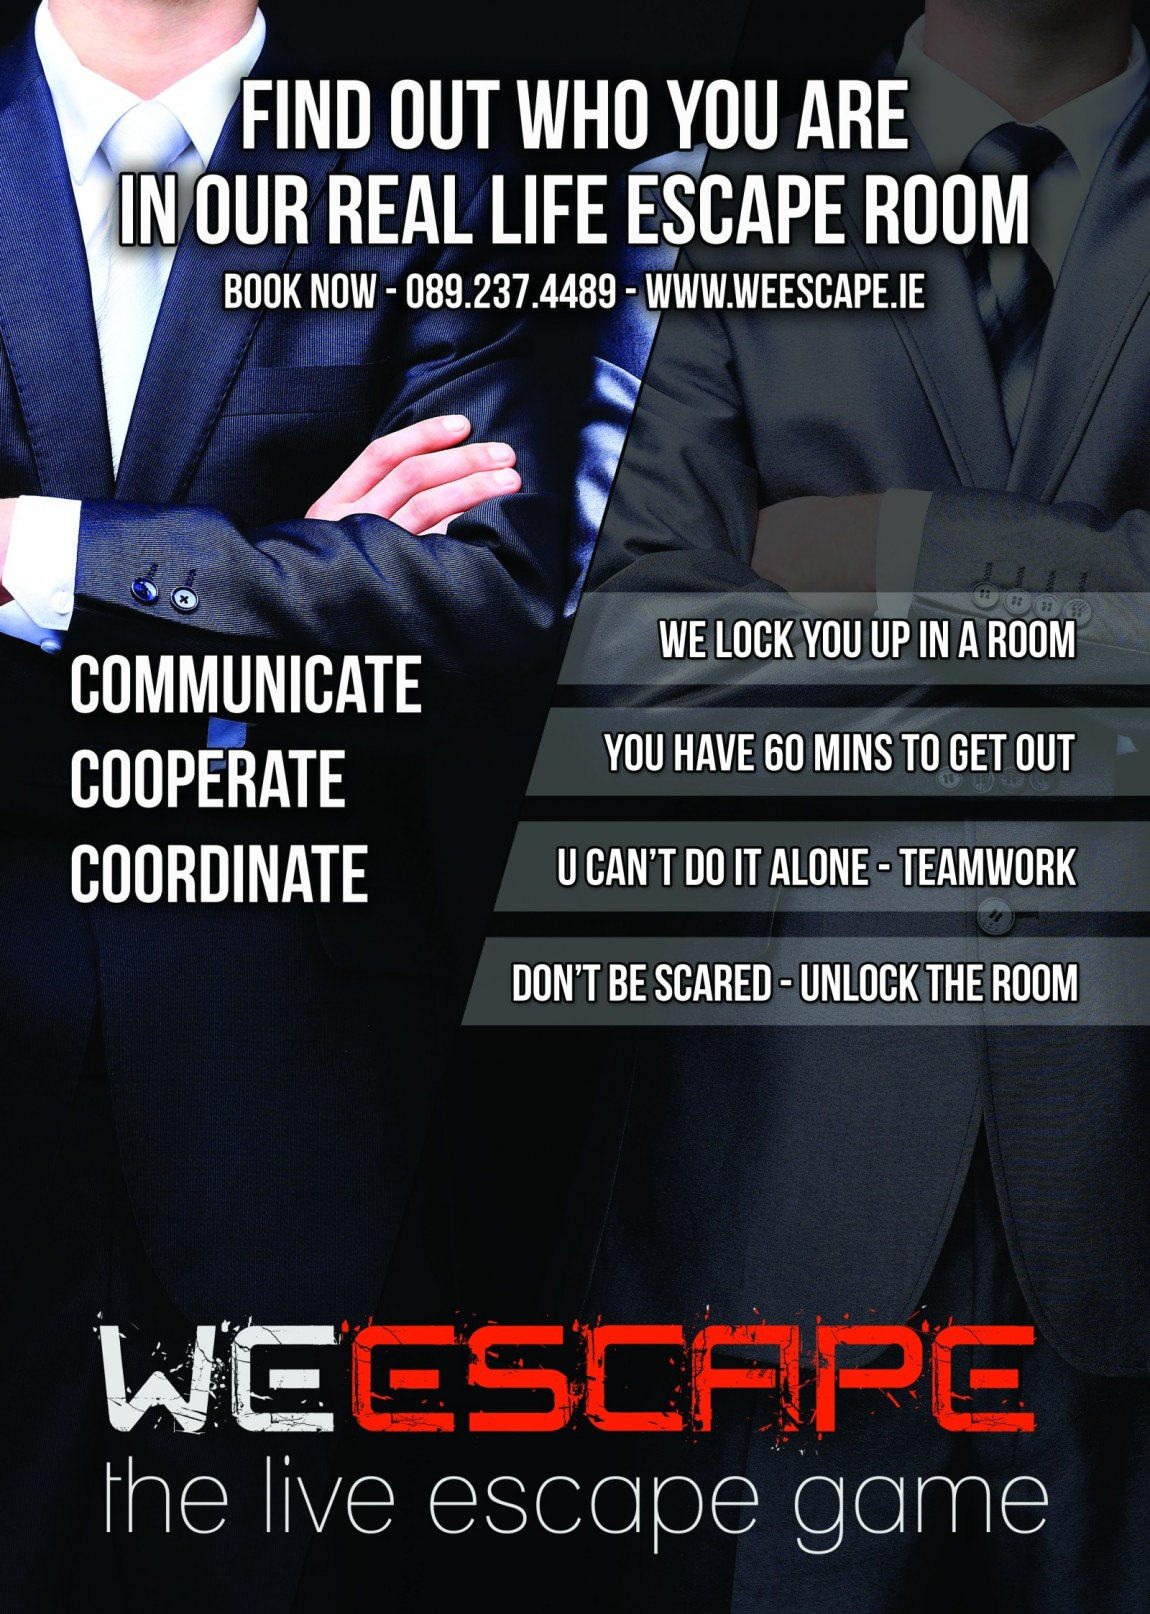 Weescape corporate poster